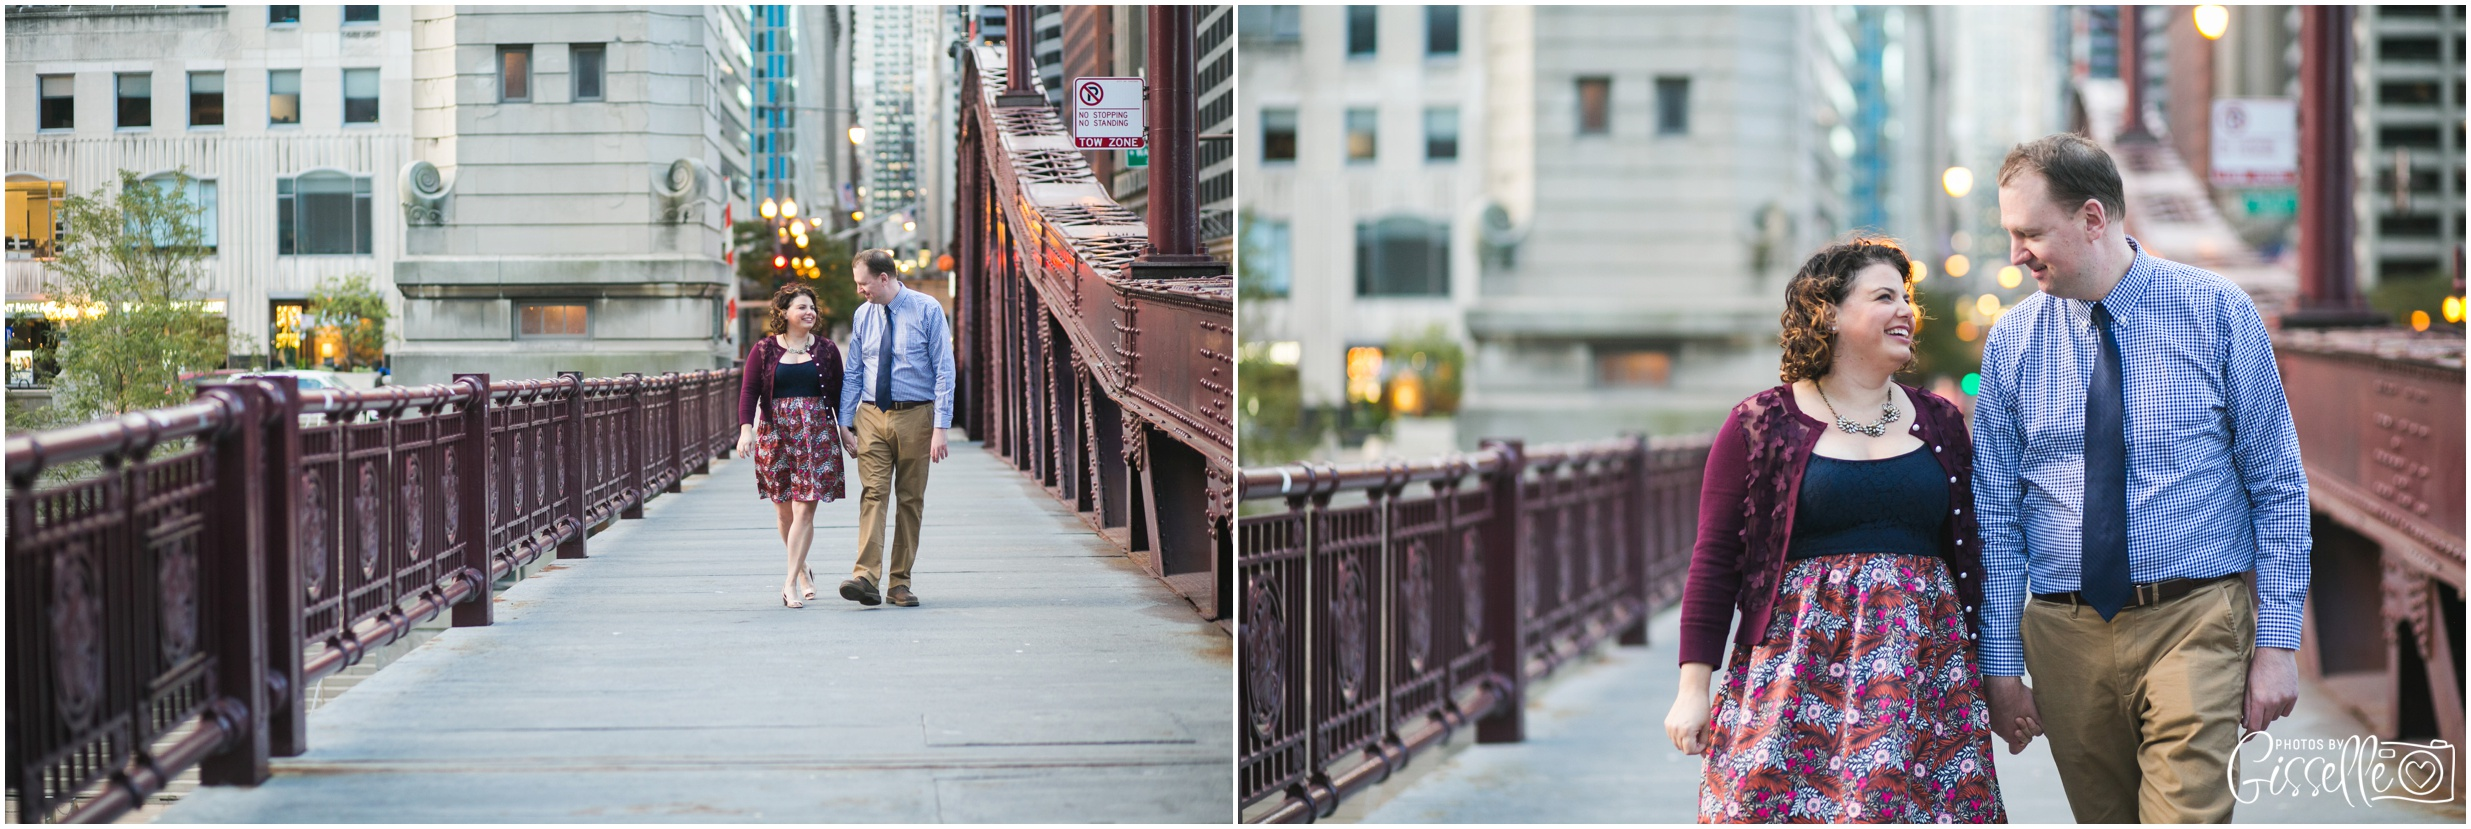 Chicago Engagement Session_0040.jpg